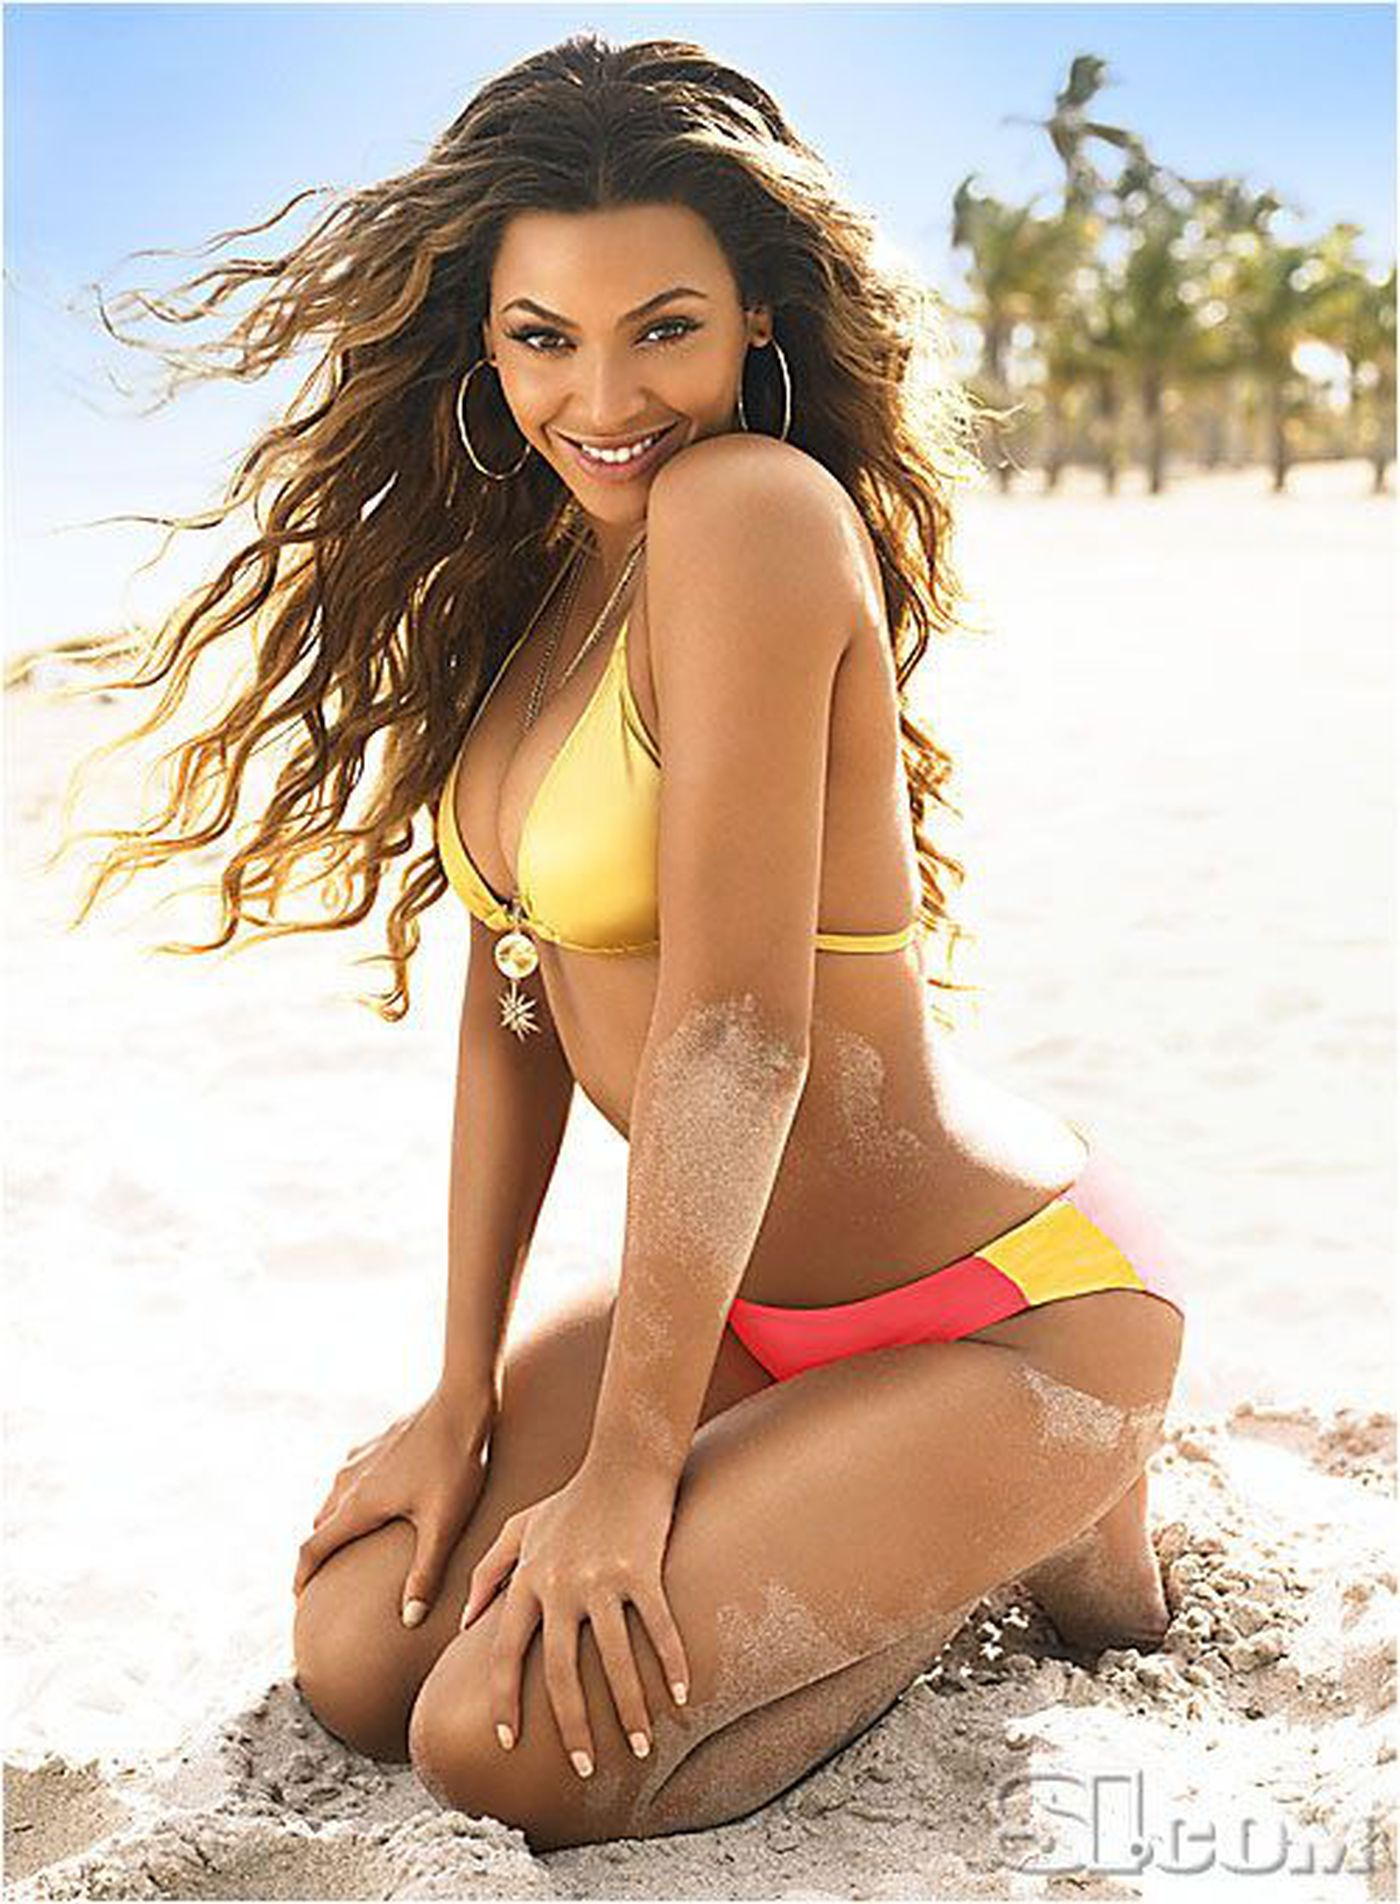 21+ Beyonce Sports Illustrated Swimsuit Issue JPG